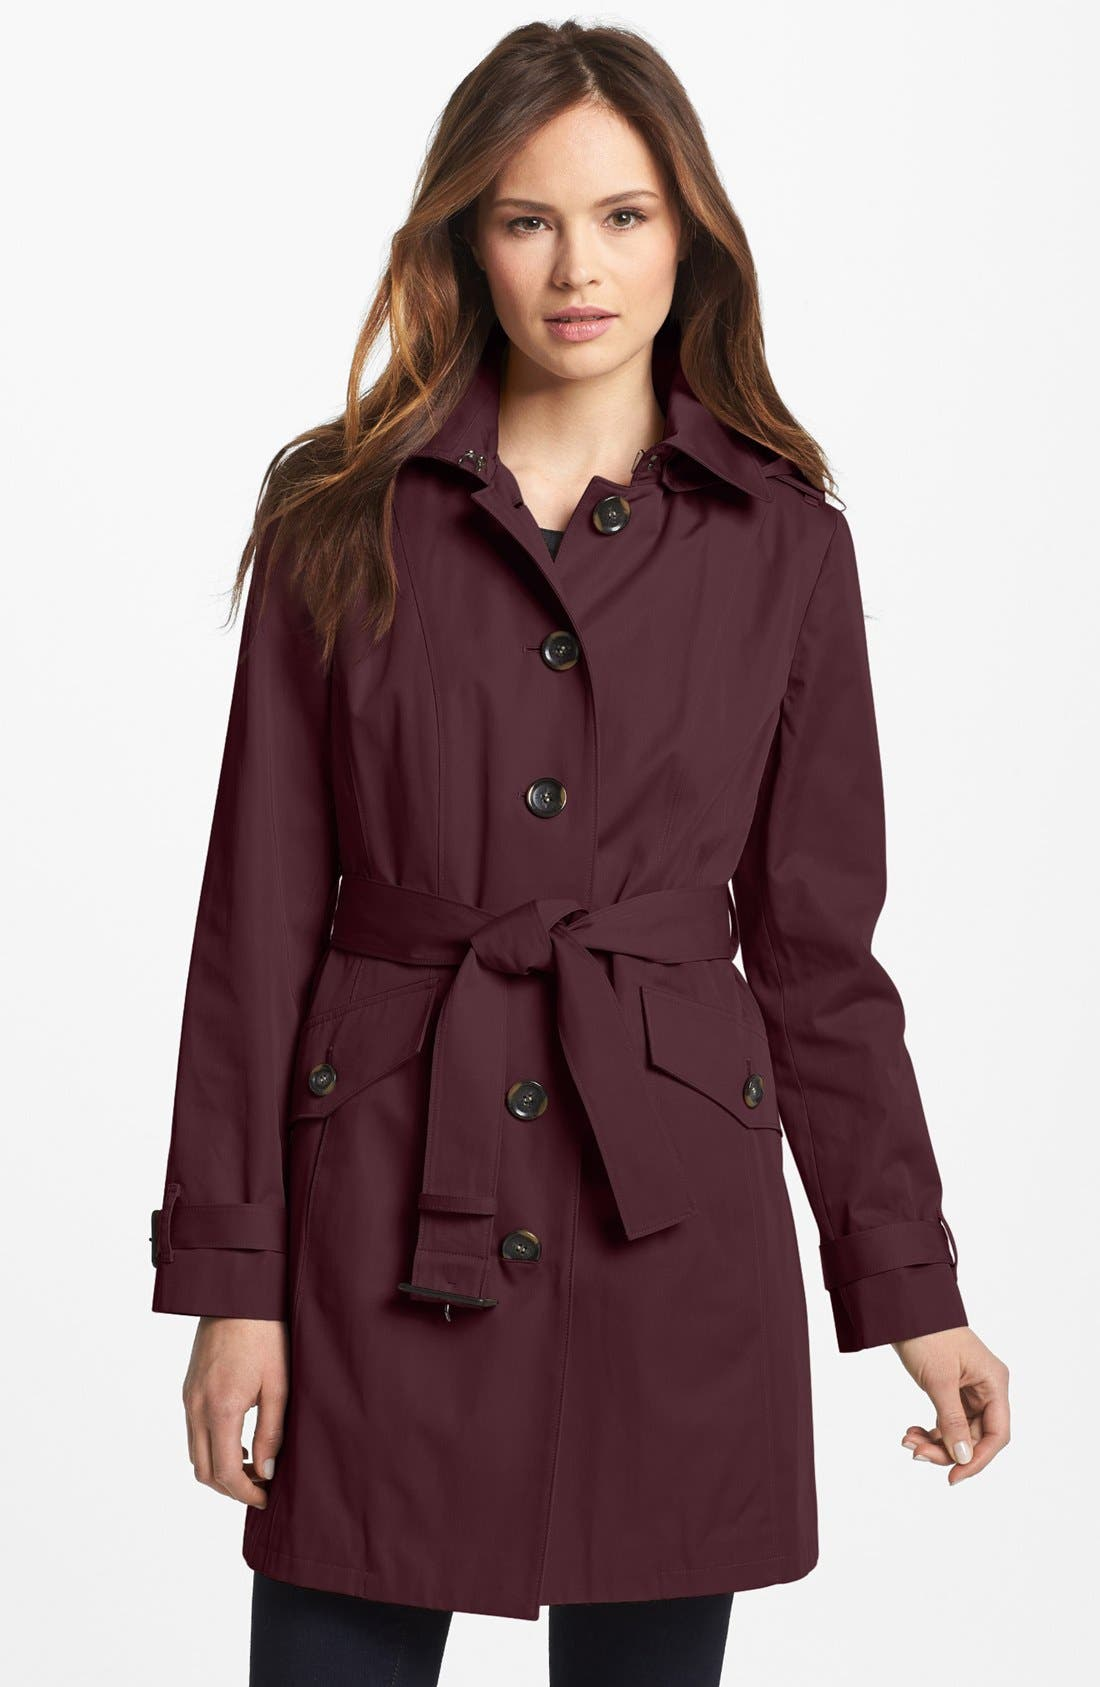 Alternate Image 1 Selected - MICHAEL Michael Kors Trench Coat with Detachable Hood (Nordstrom Exclusive)